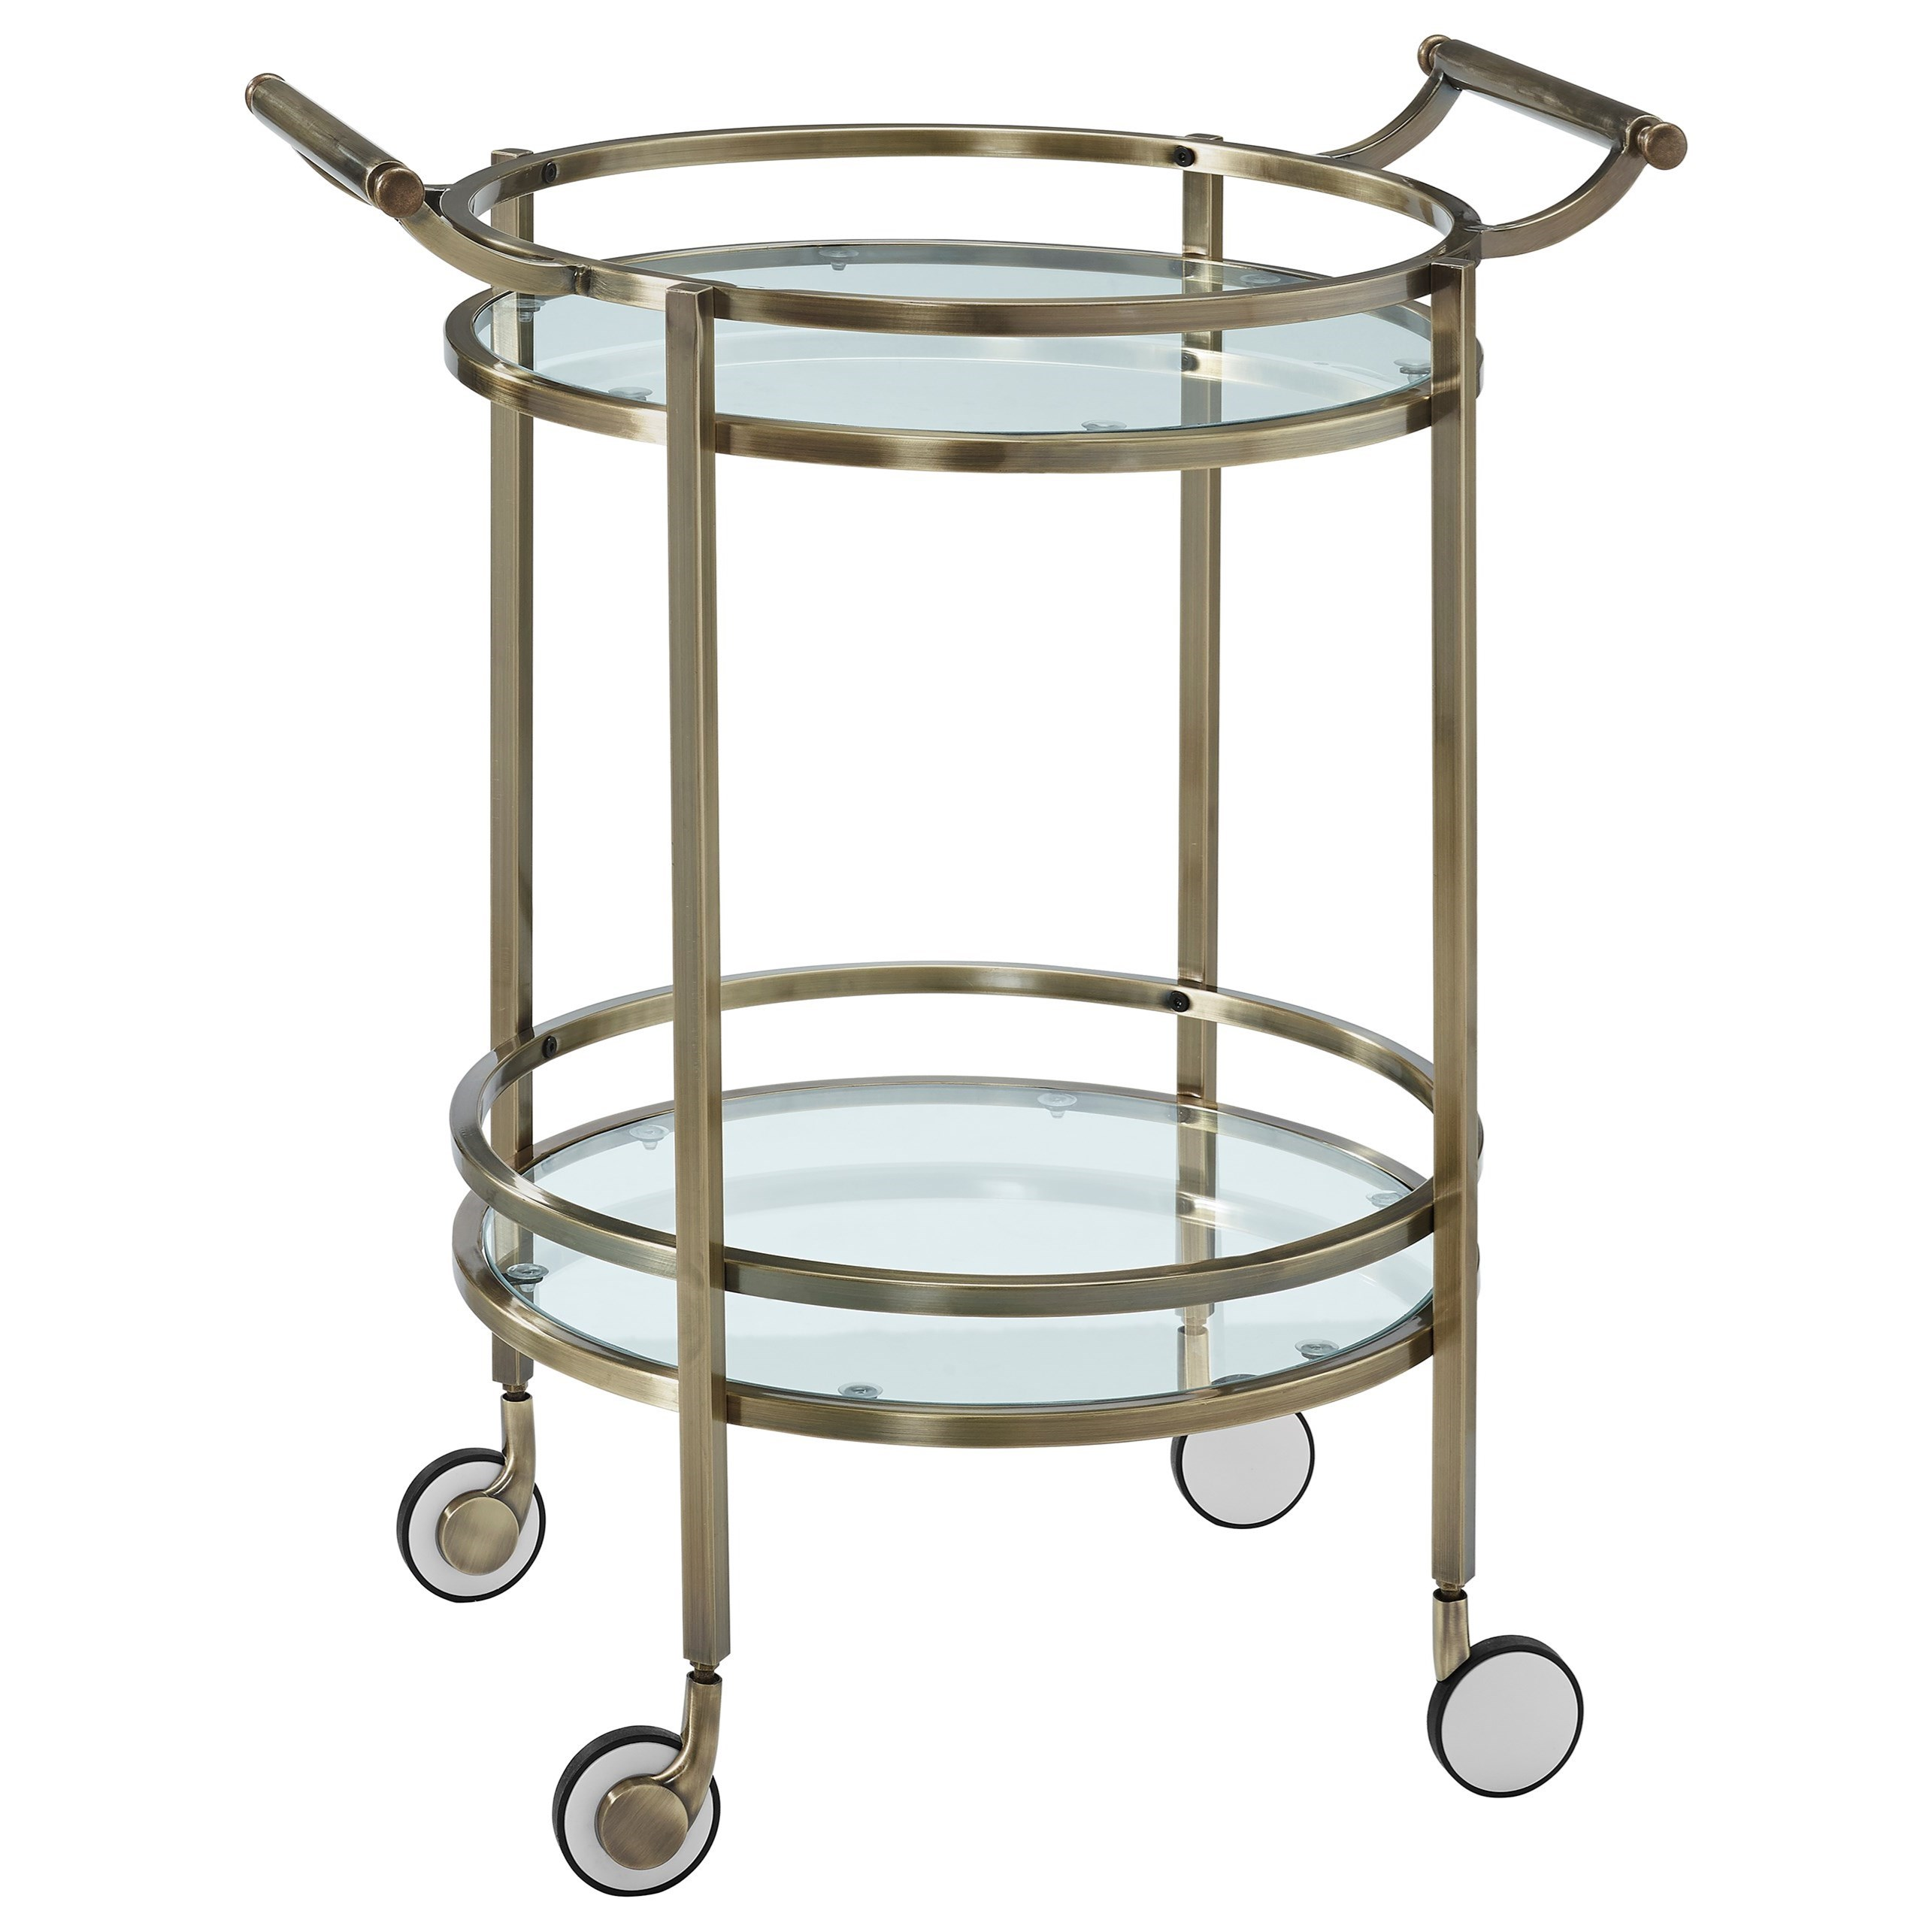 Antique Brass Round Svc Cart